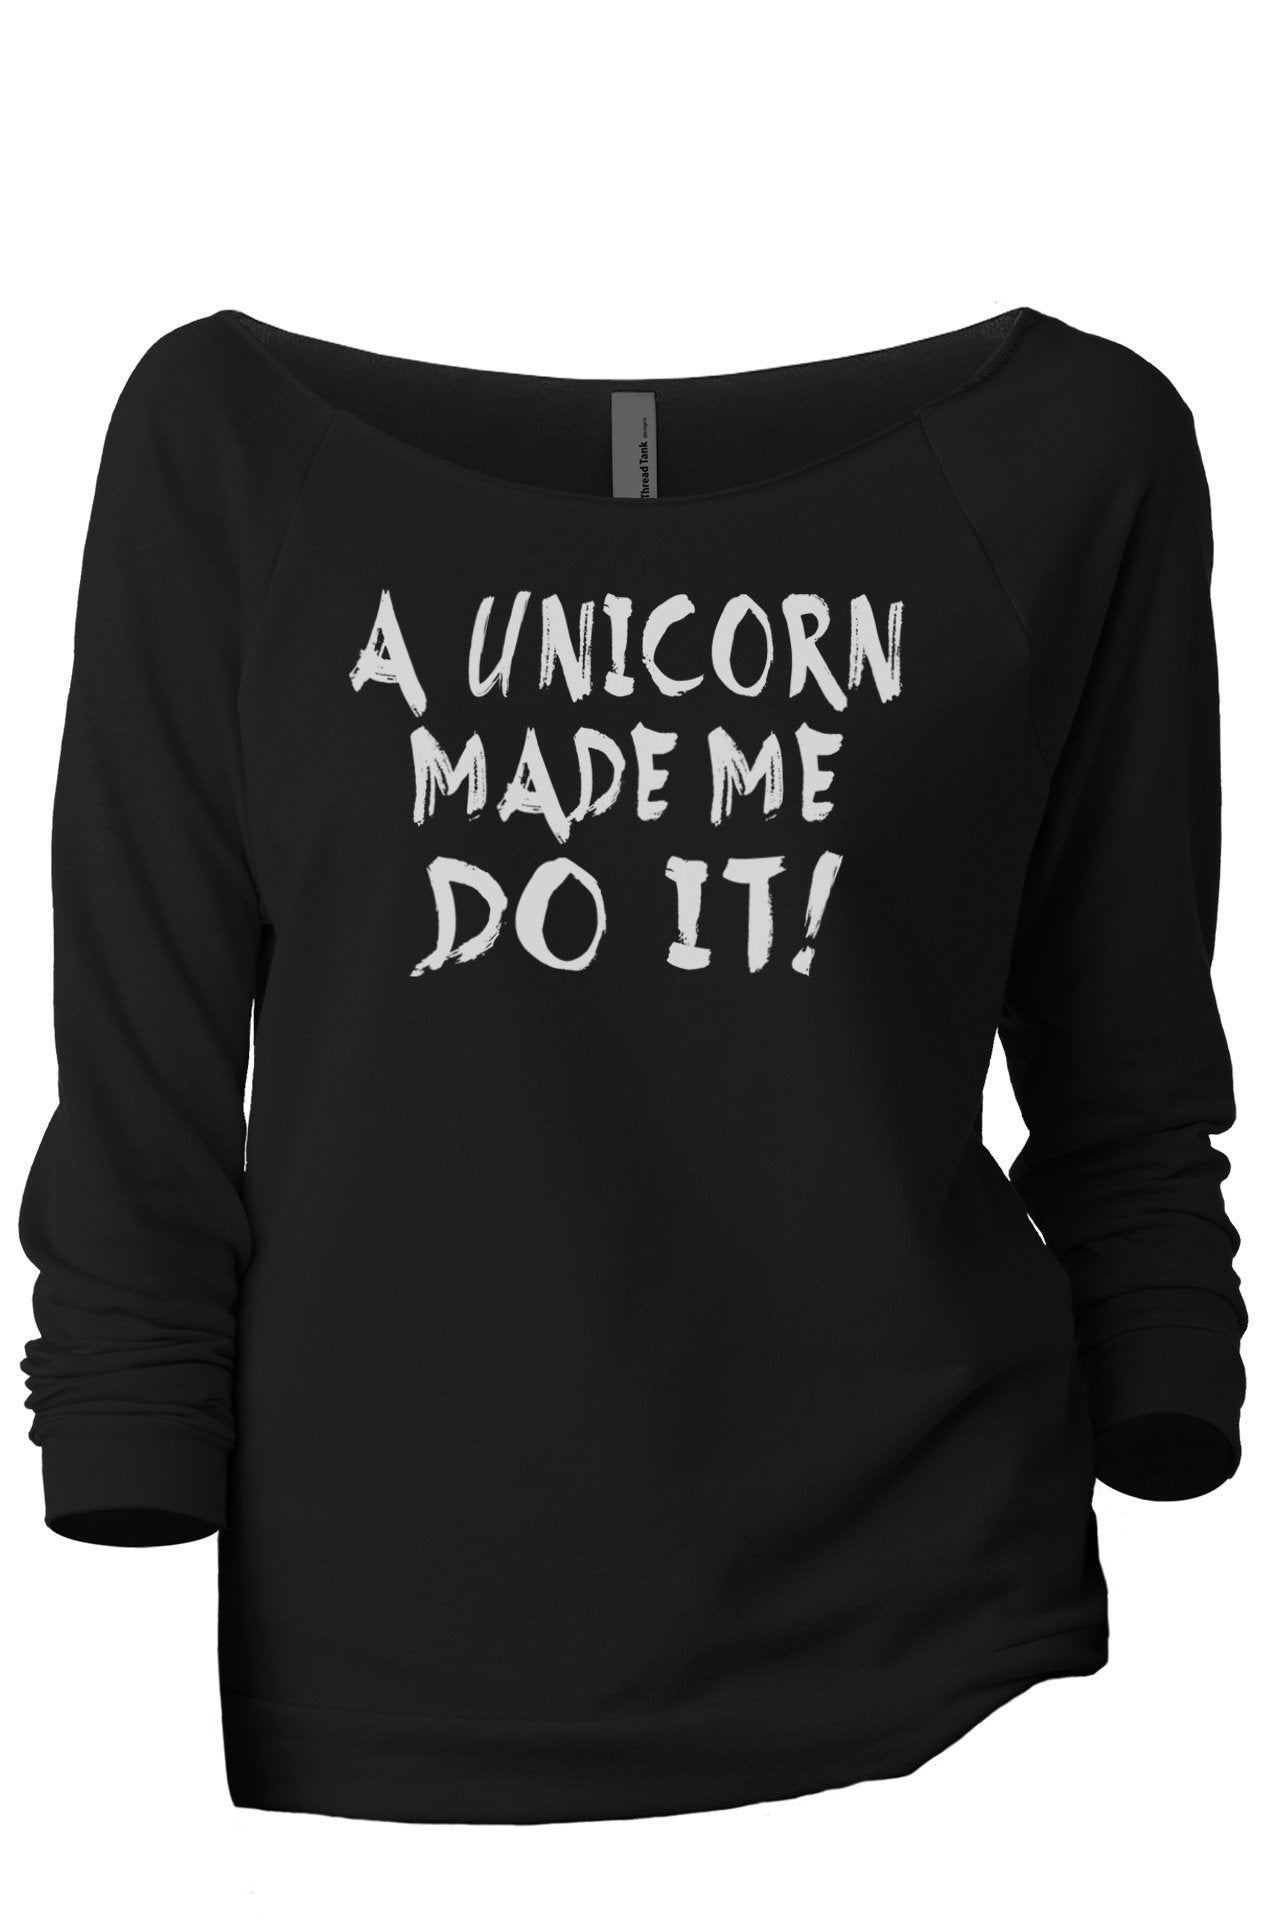 A Unicorn Made Me Do It Women's Graphic Printed Lightweight Slouchy 3/4 Sleeves Sweatshirt Sport Grey